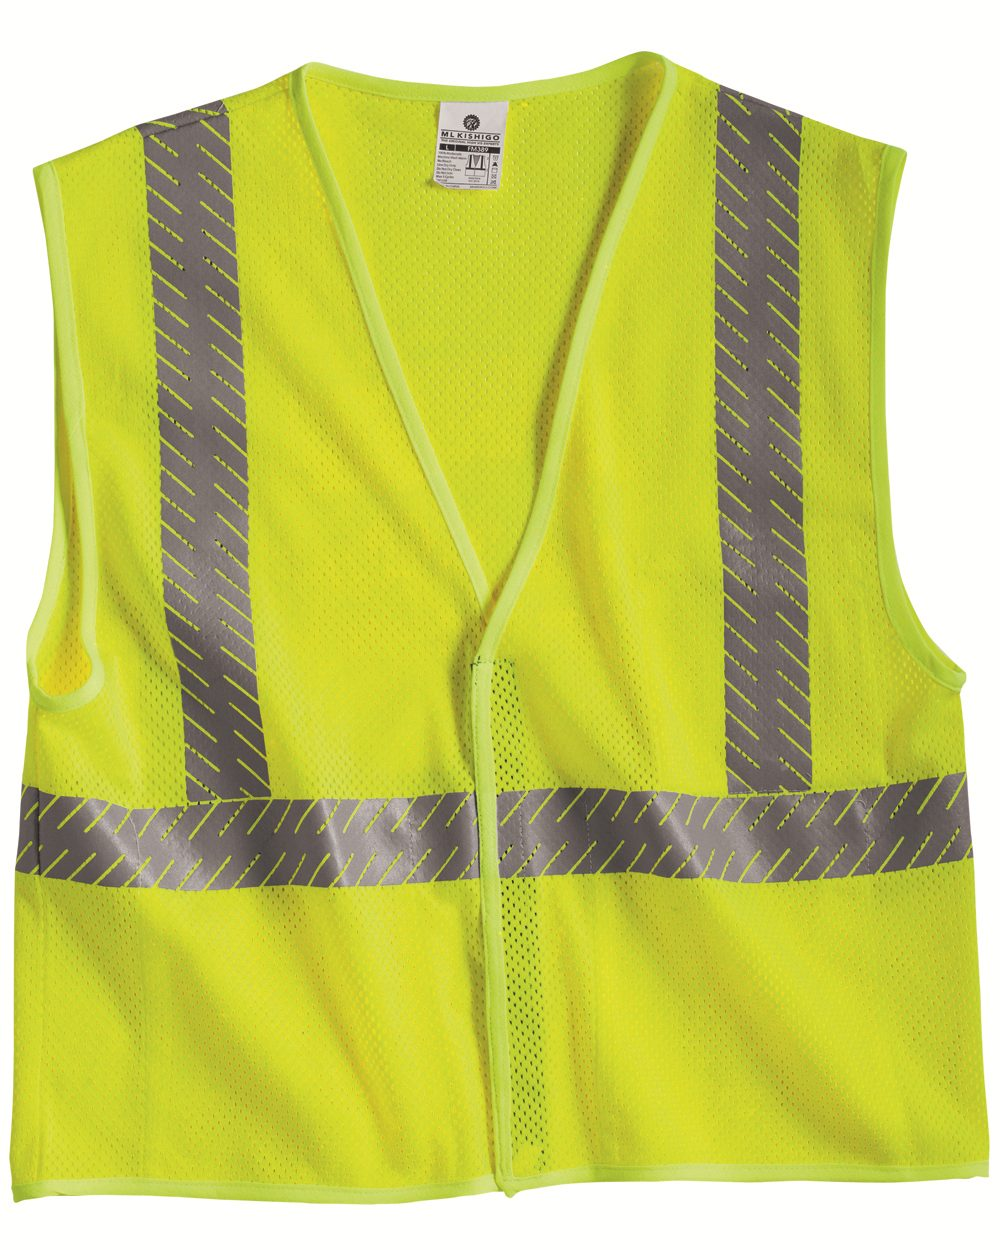 ML Kishigo Flame-Resistant Breathable Mesh Vest - FM389